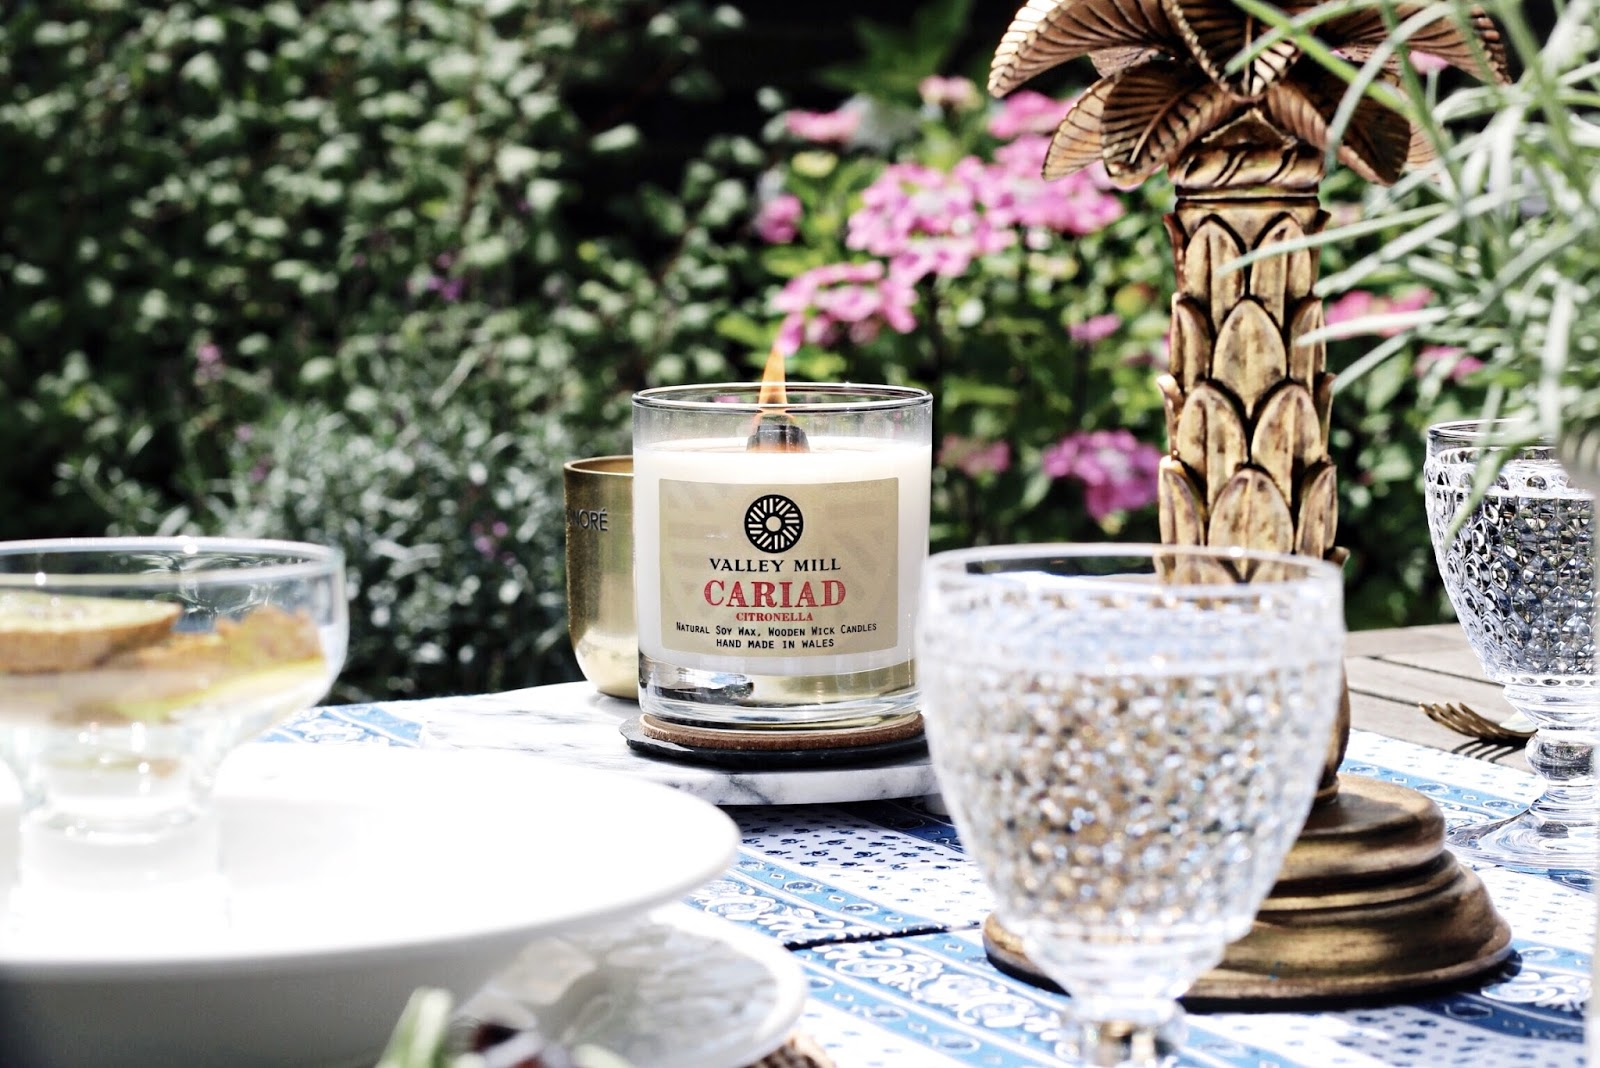 Valley Mill Cariad Citronella Candle